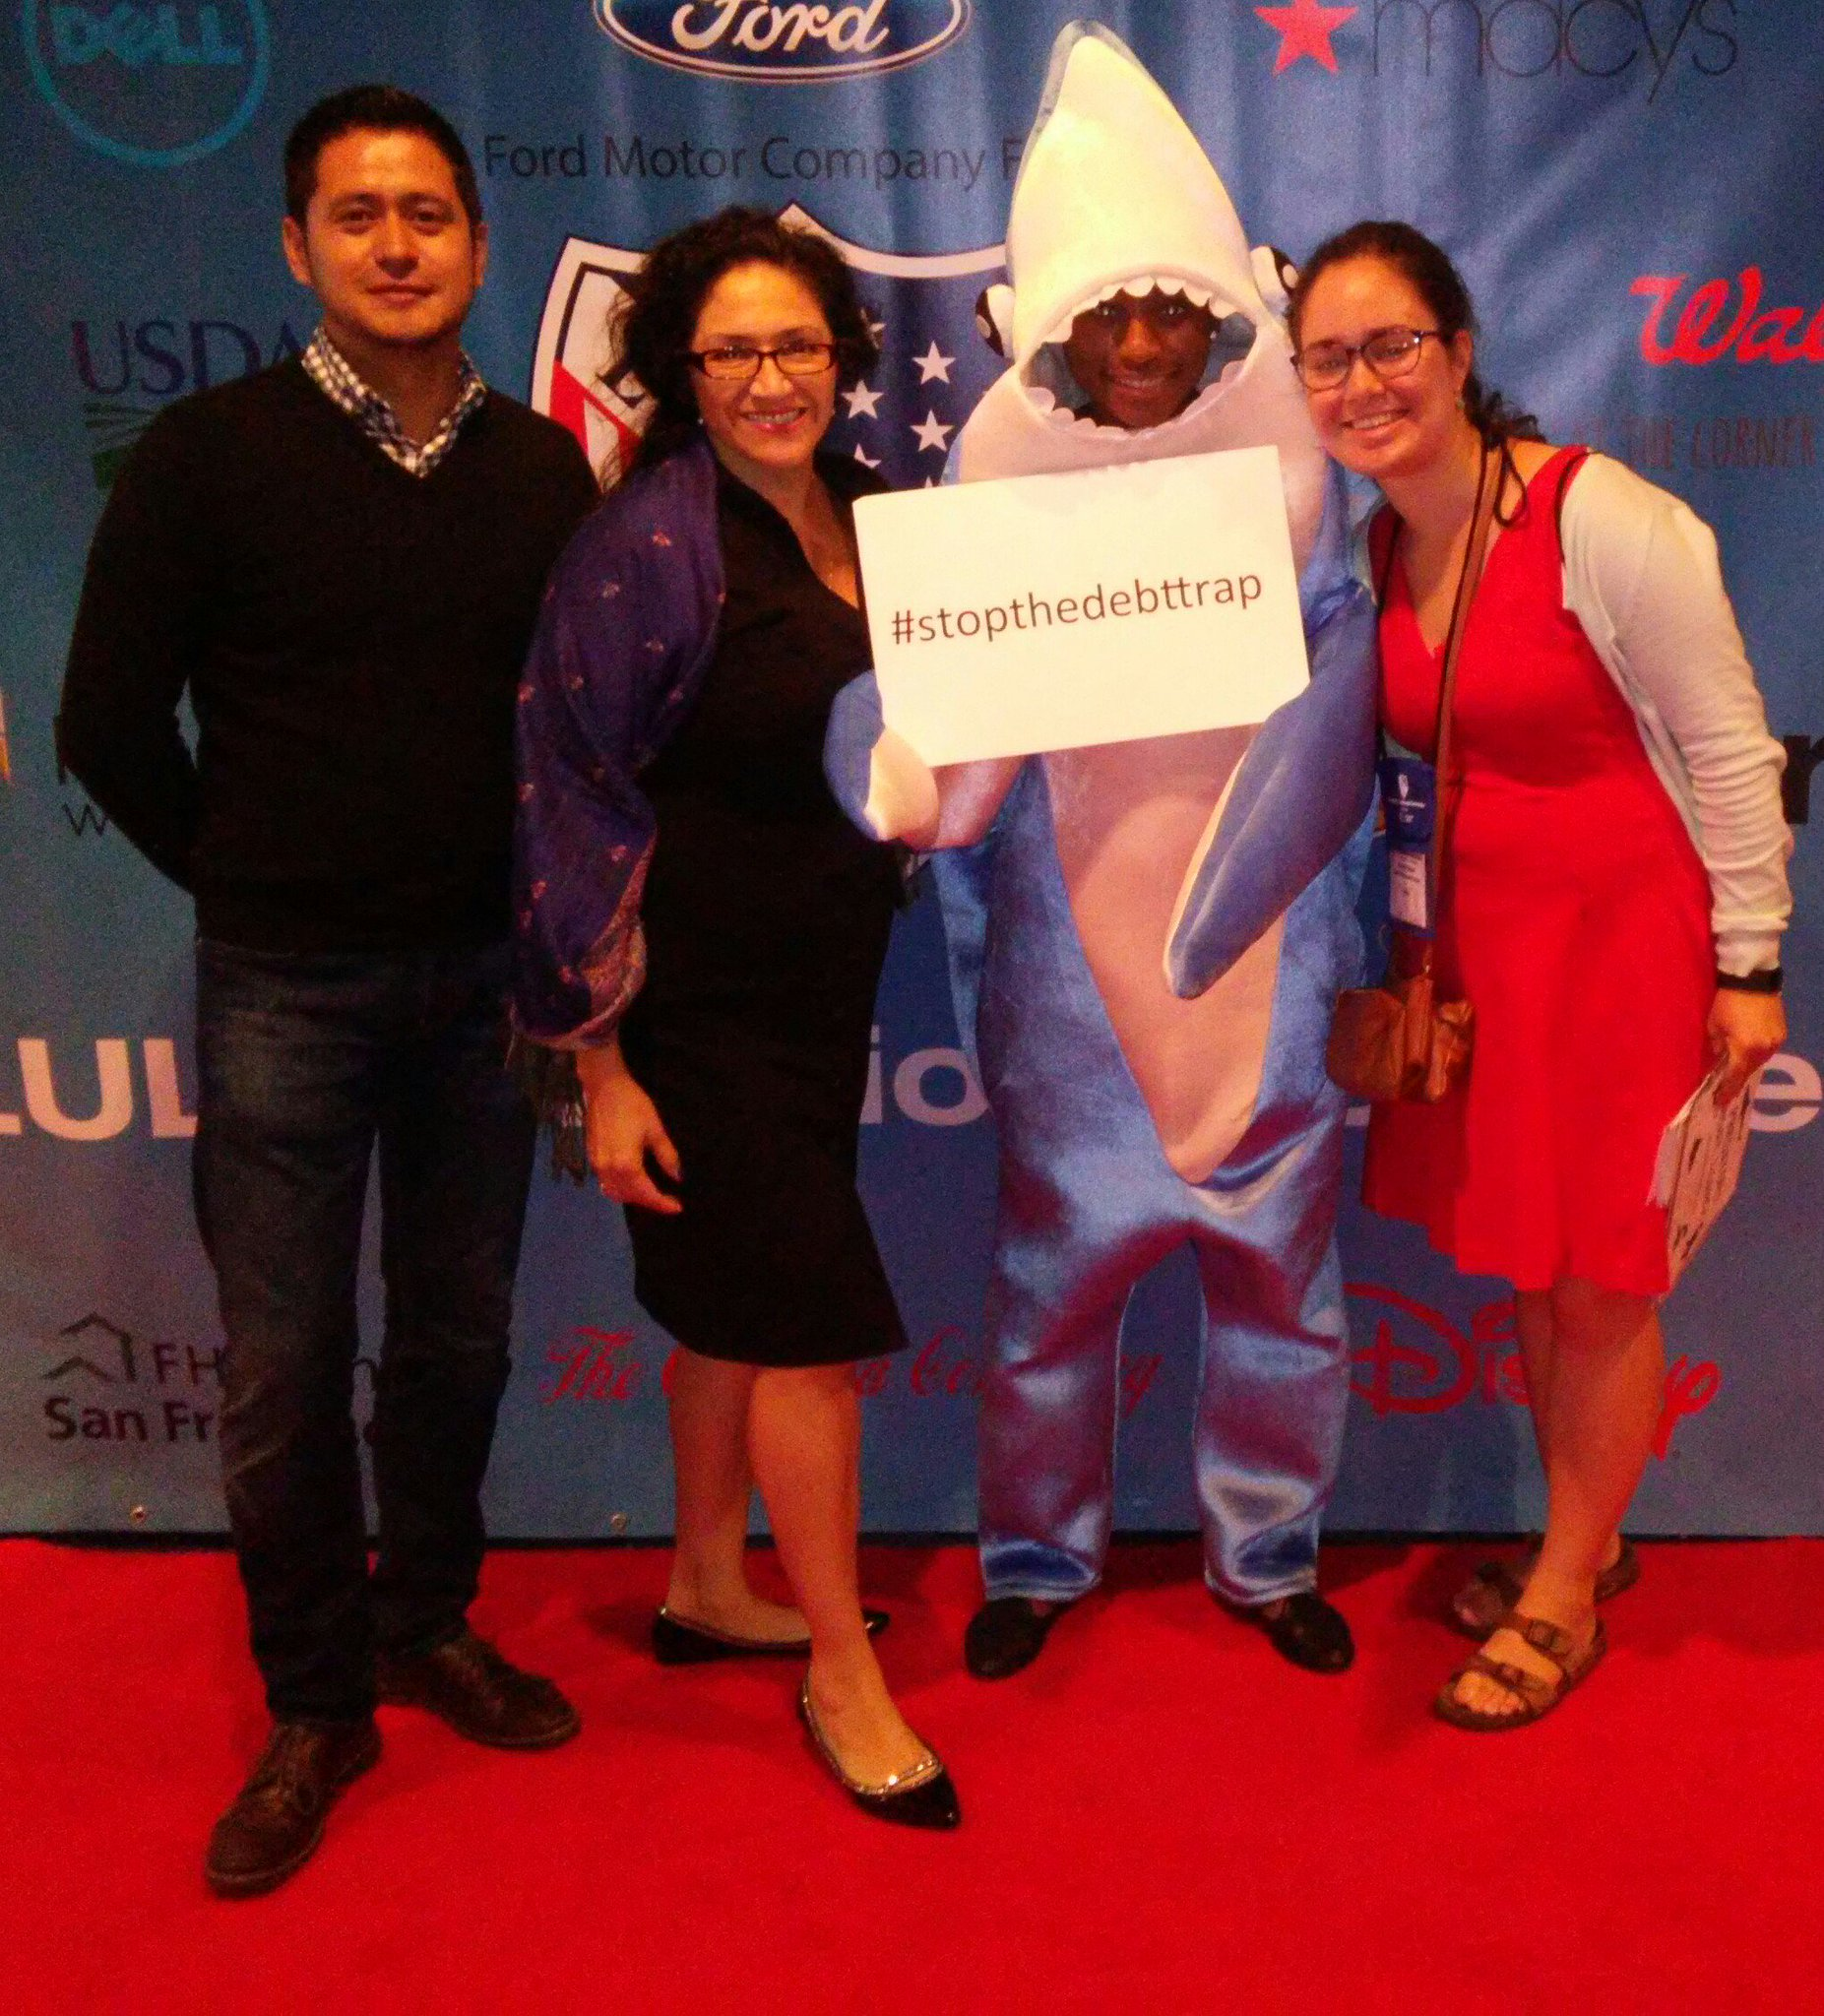 This is the CRL team @LULAC #LULAC16 working 2 #StopTheDebtTrap @CFPB https://t.co/DUucFQGPIy